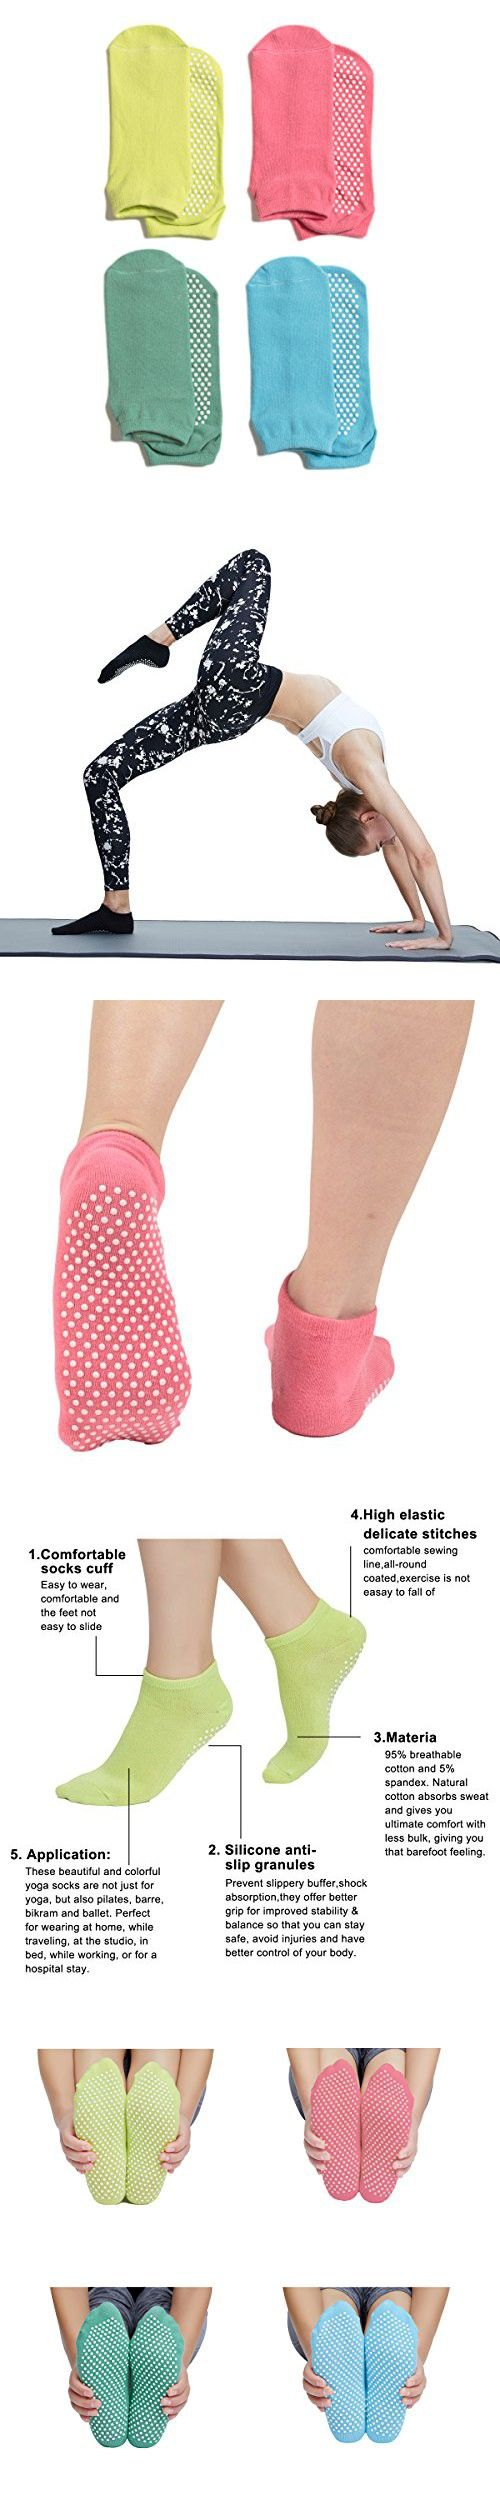 Yoga Pilates Socks Non Slip Skid with Grips for Pilates Barre Ballet 4 Pairs Cotton Socks One Size 5-10